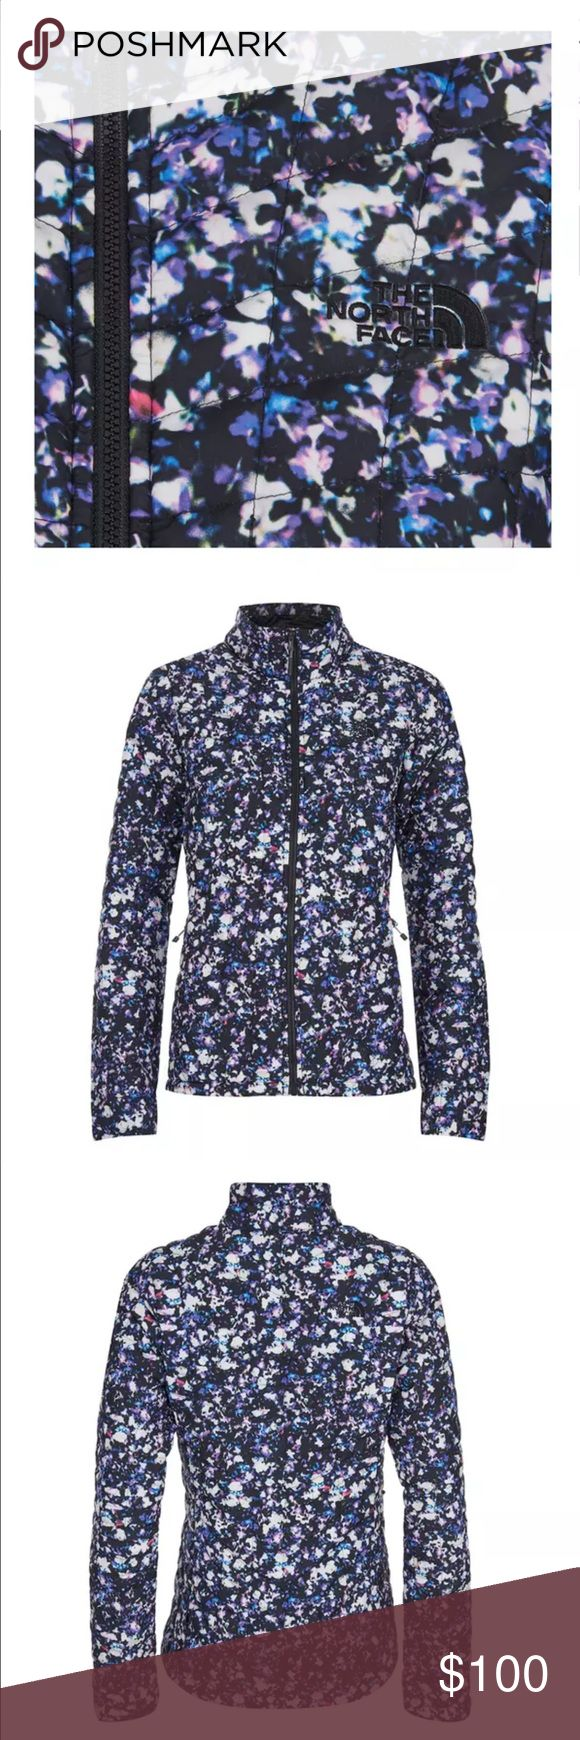 NWT Floral The North Face Thermoball Jacket Brand New Size Small The North Face Jackets & Coats